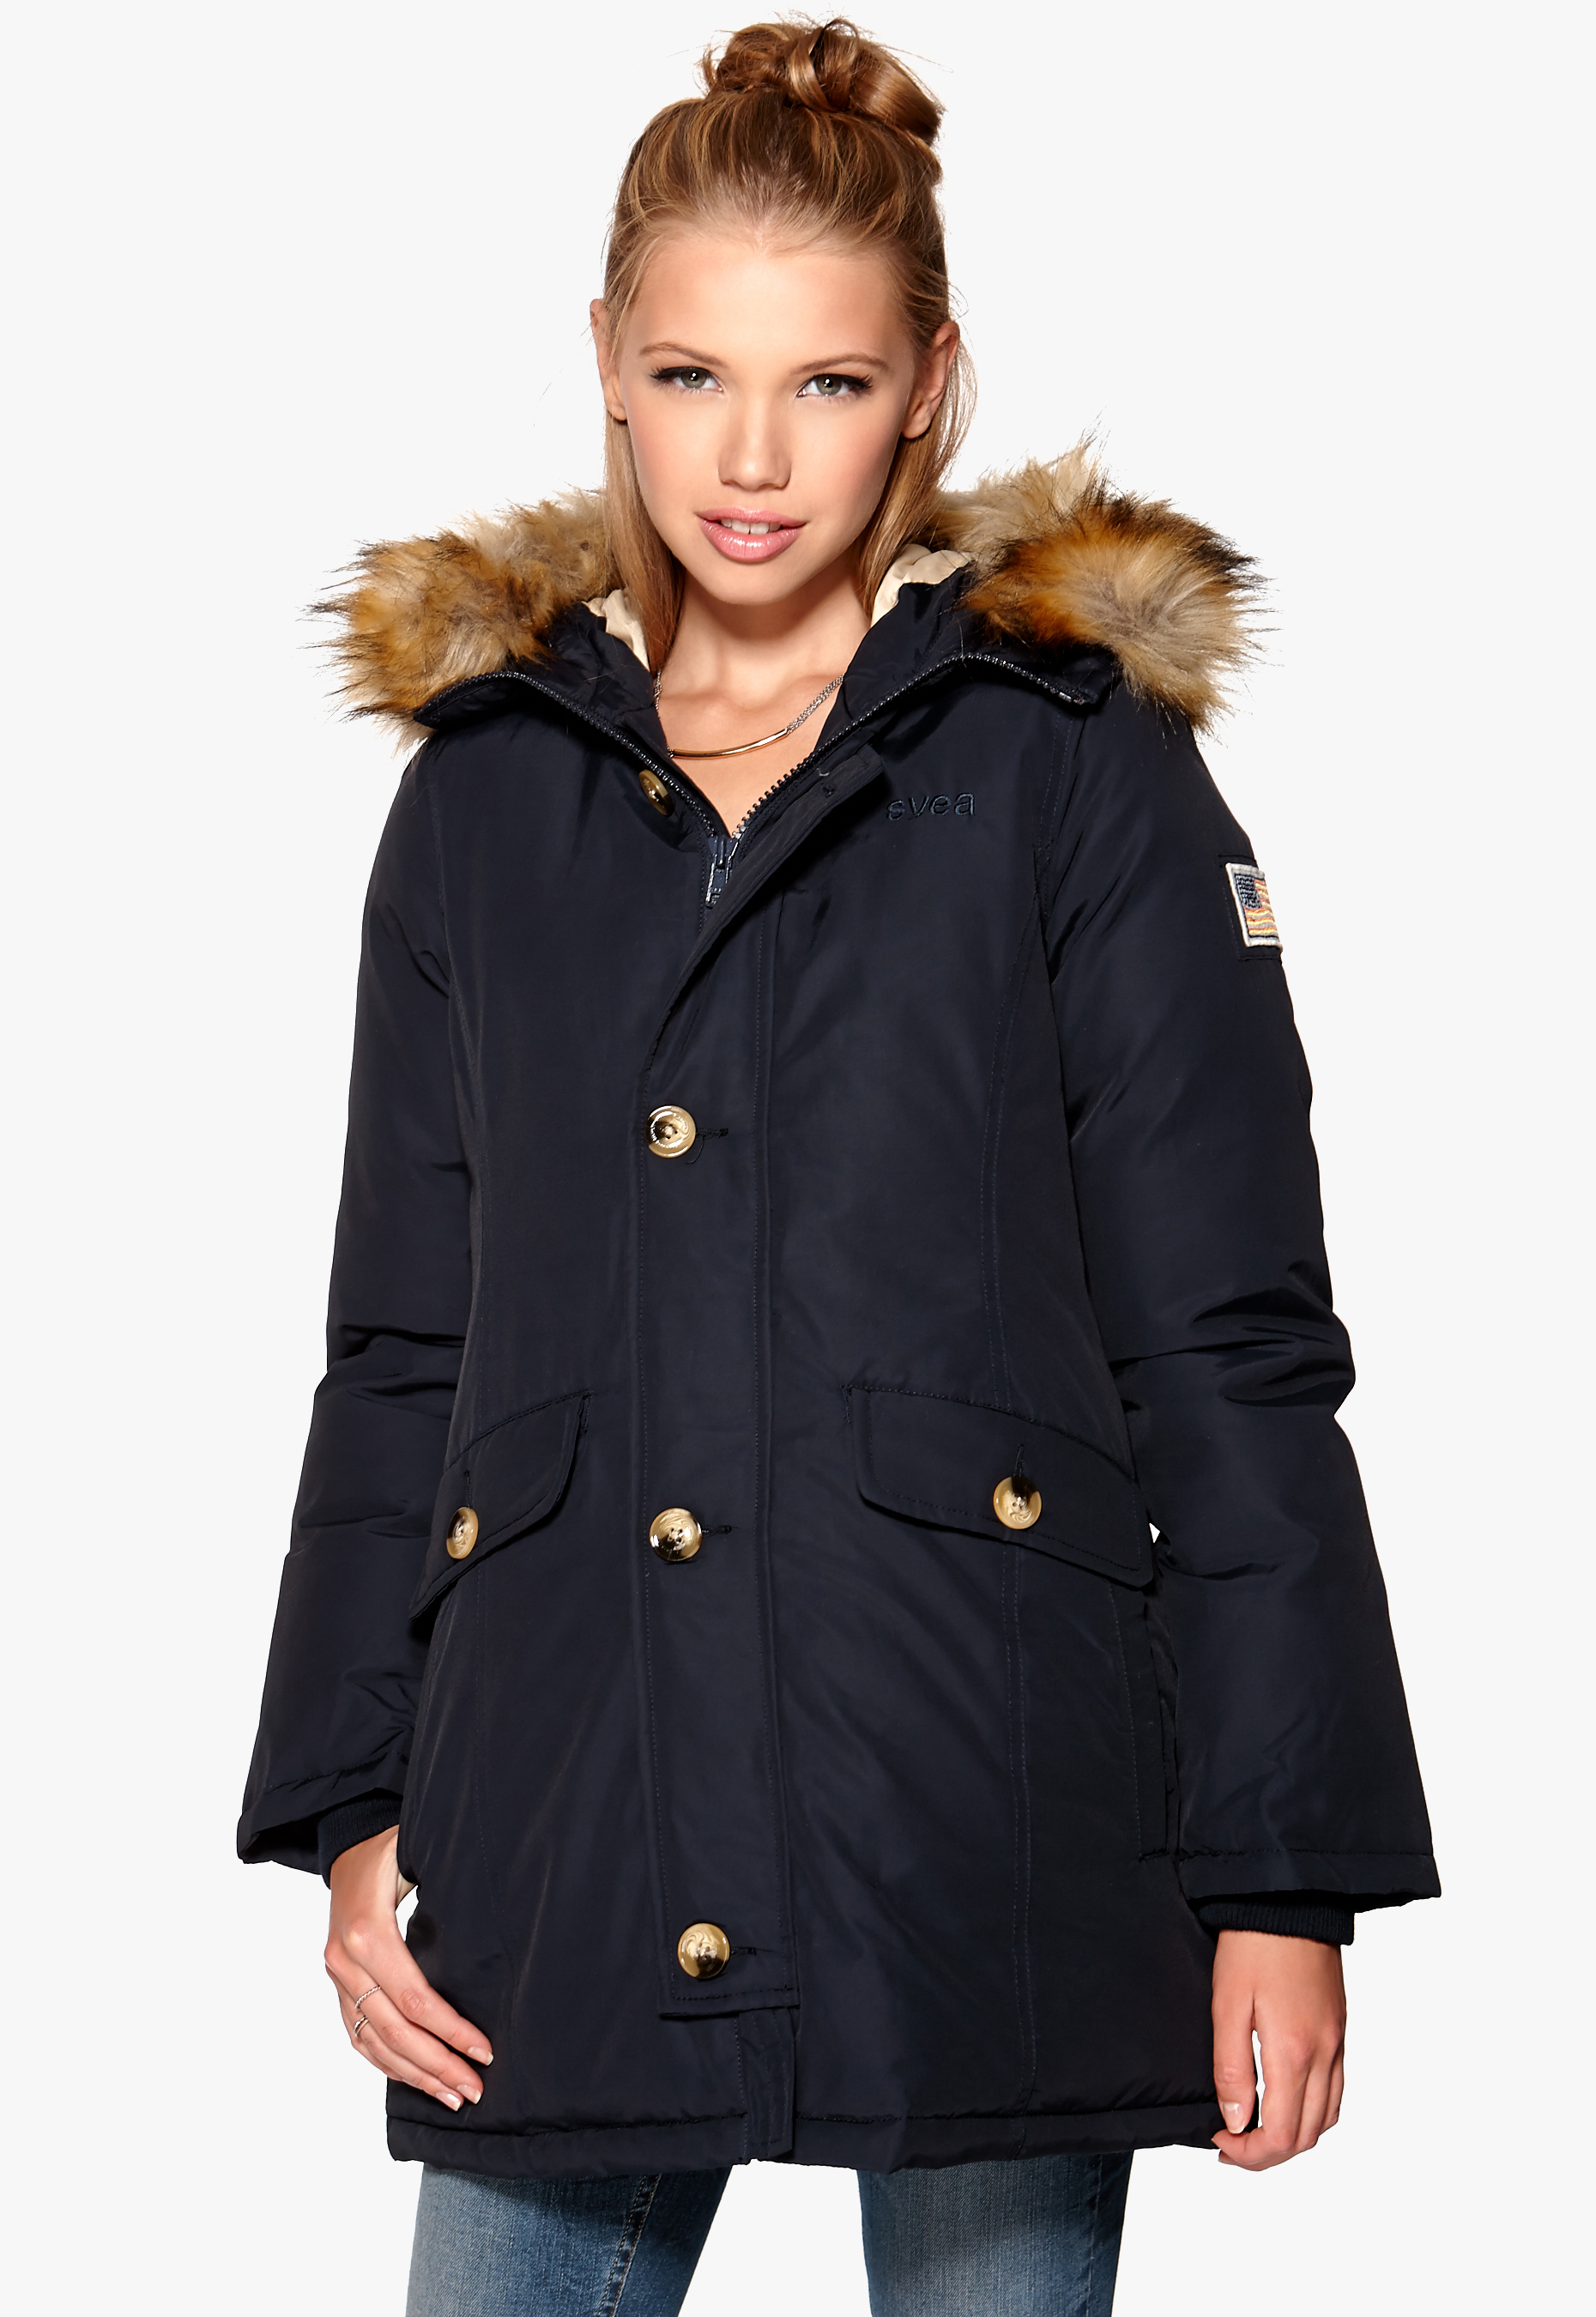 53823629 Svea Miss Smith Jacket Navy - Bubbleroom